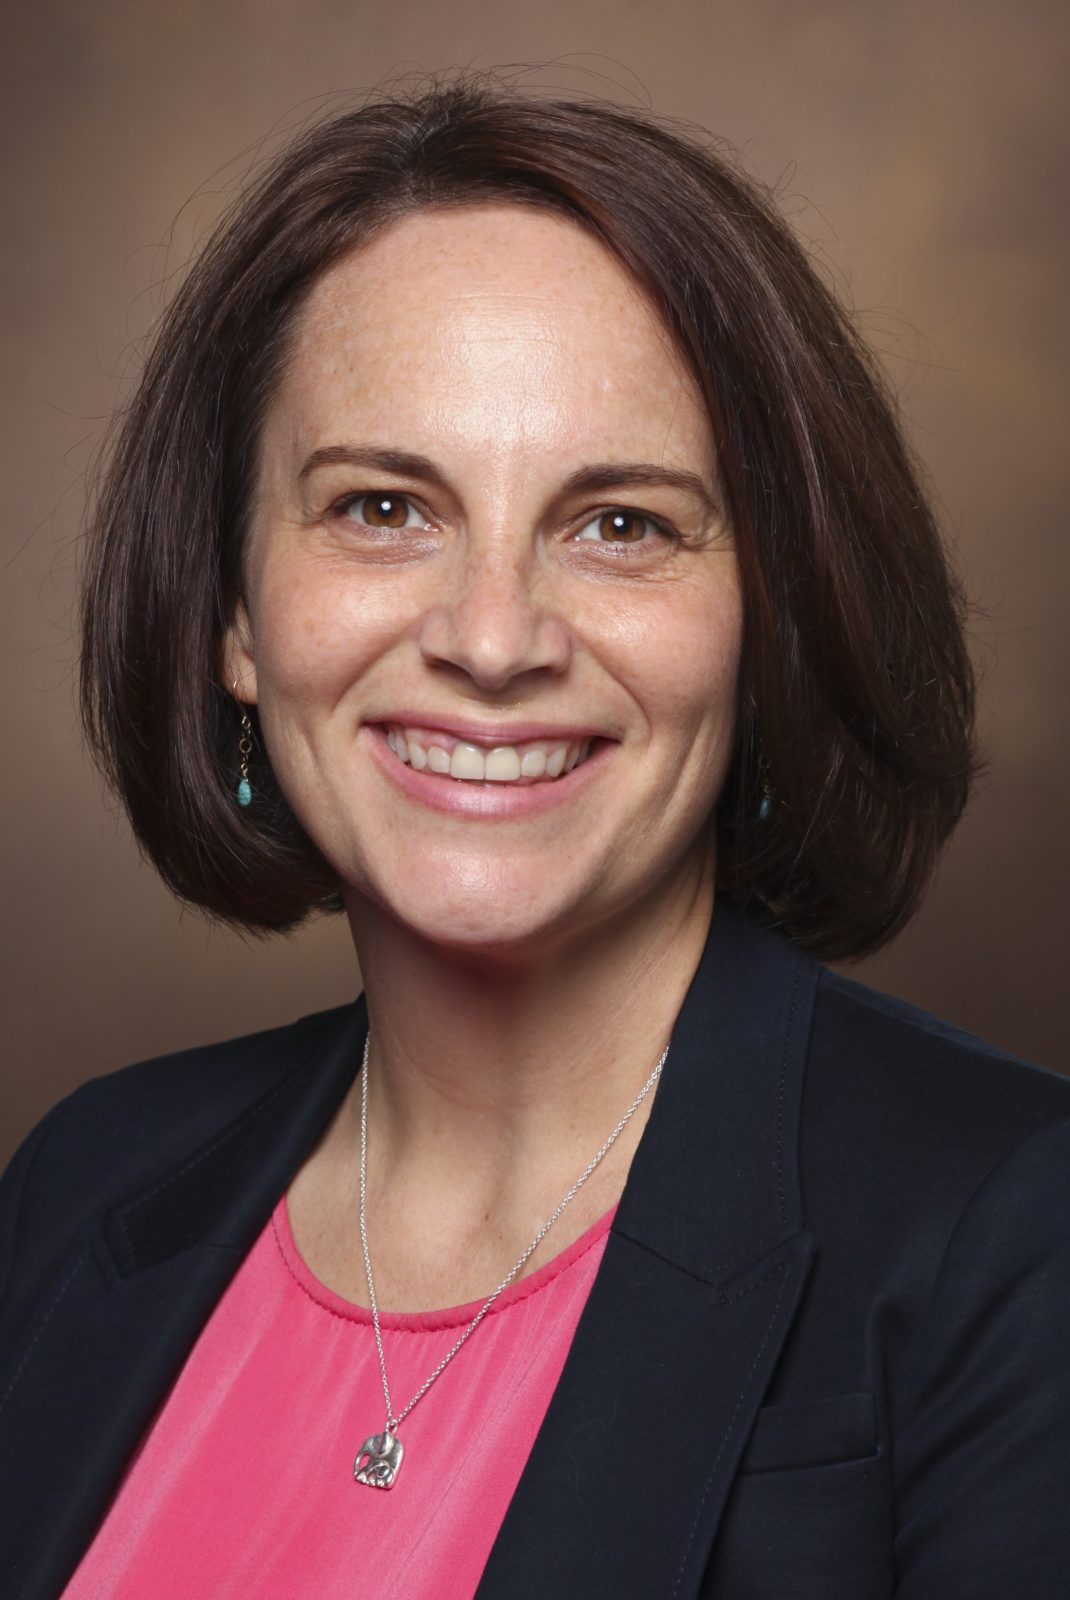 Tara McKay, assistant professor of medicine, health and society (Vanderbilt University)